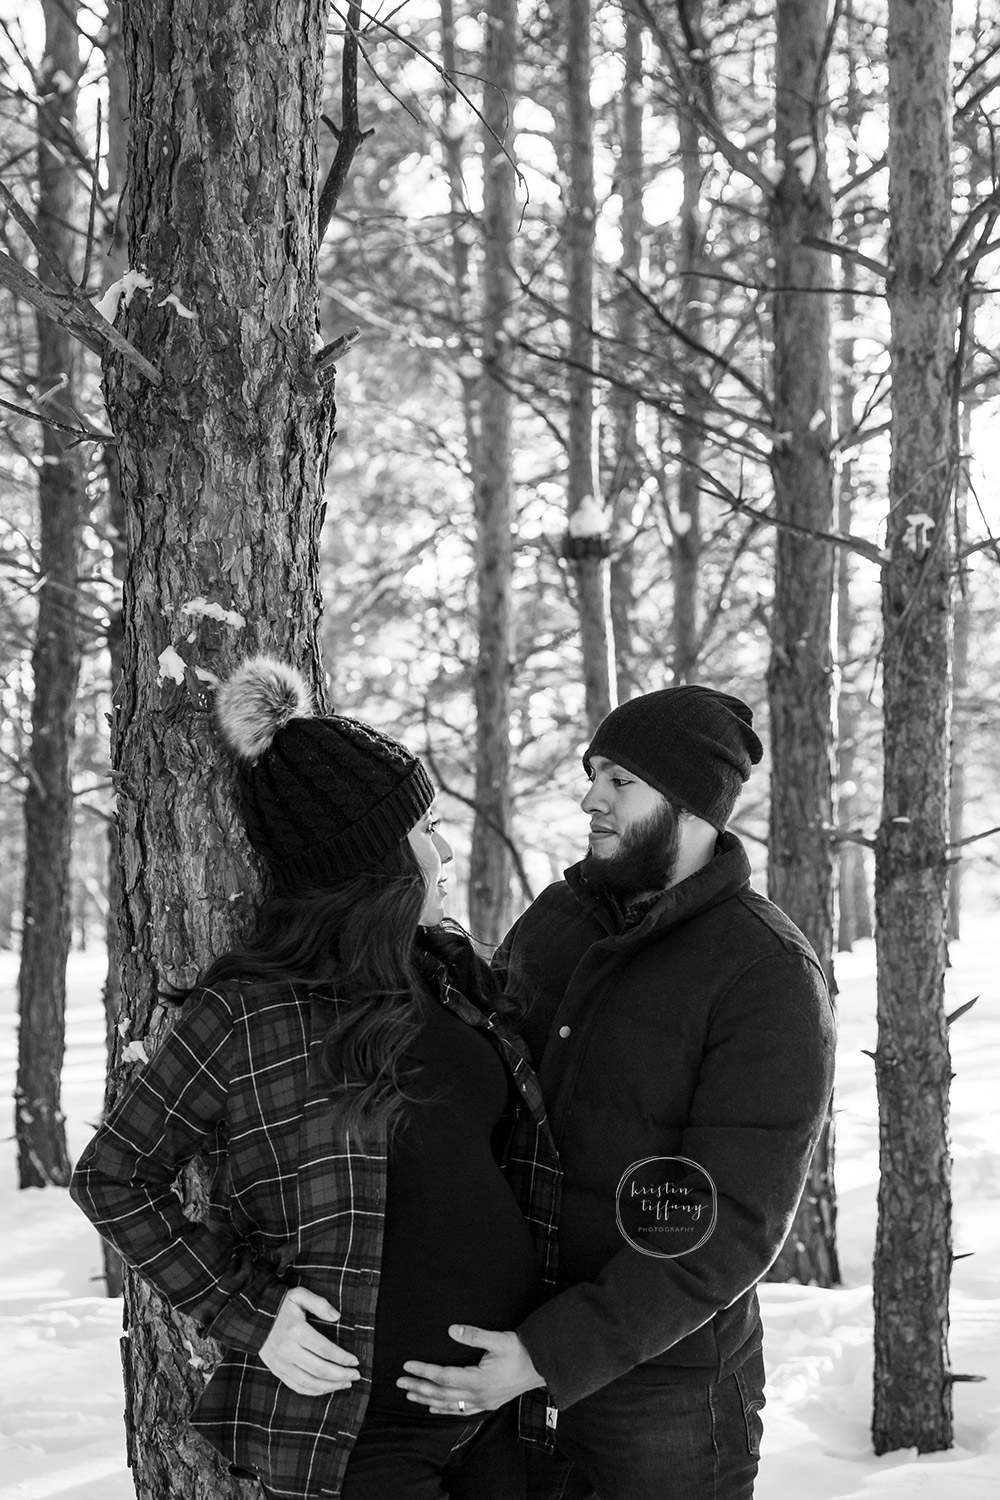 a maternity photo taken in the winter